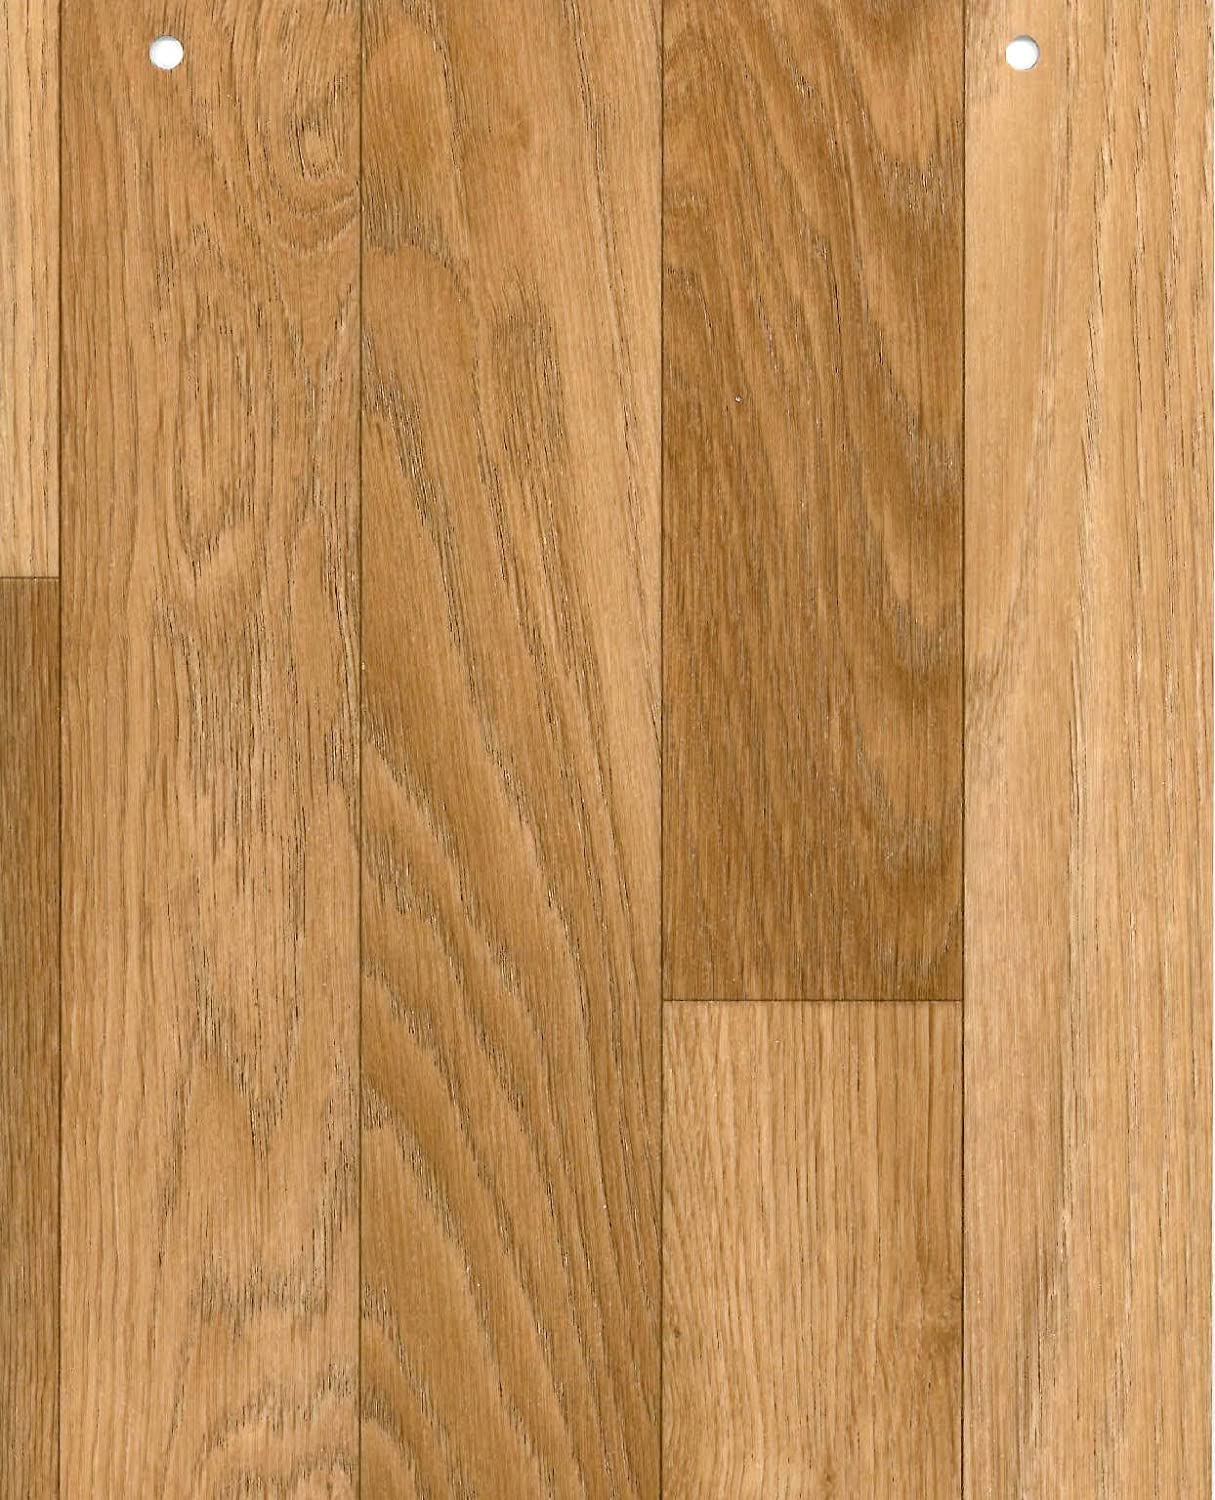 Vinyl floor tiles oak effect floor matttroy for Lino flooring wood effect